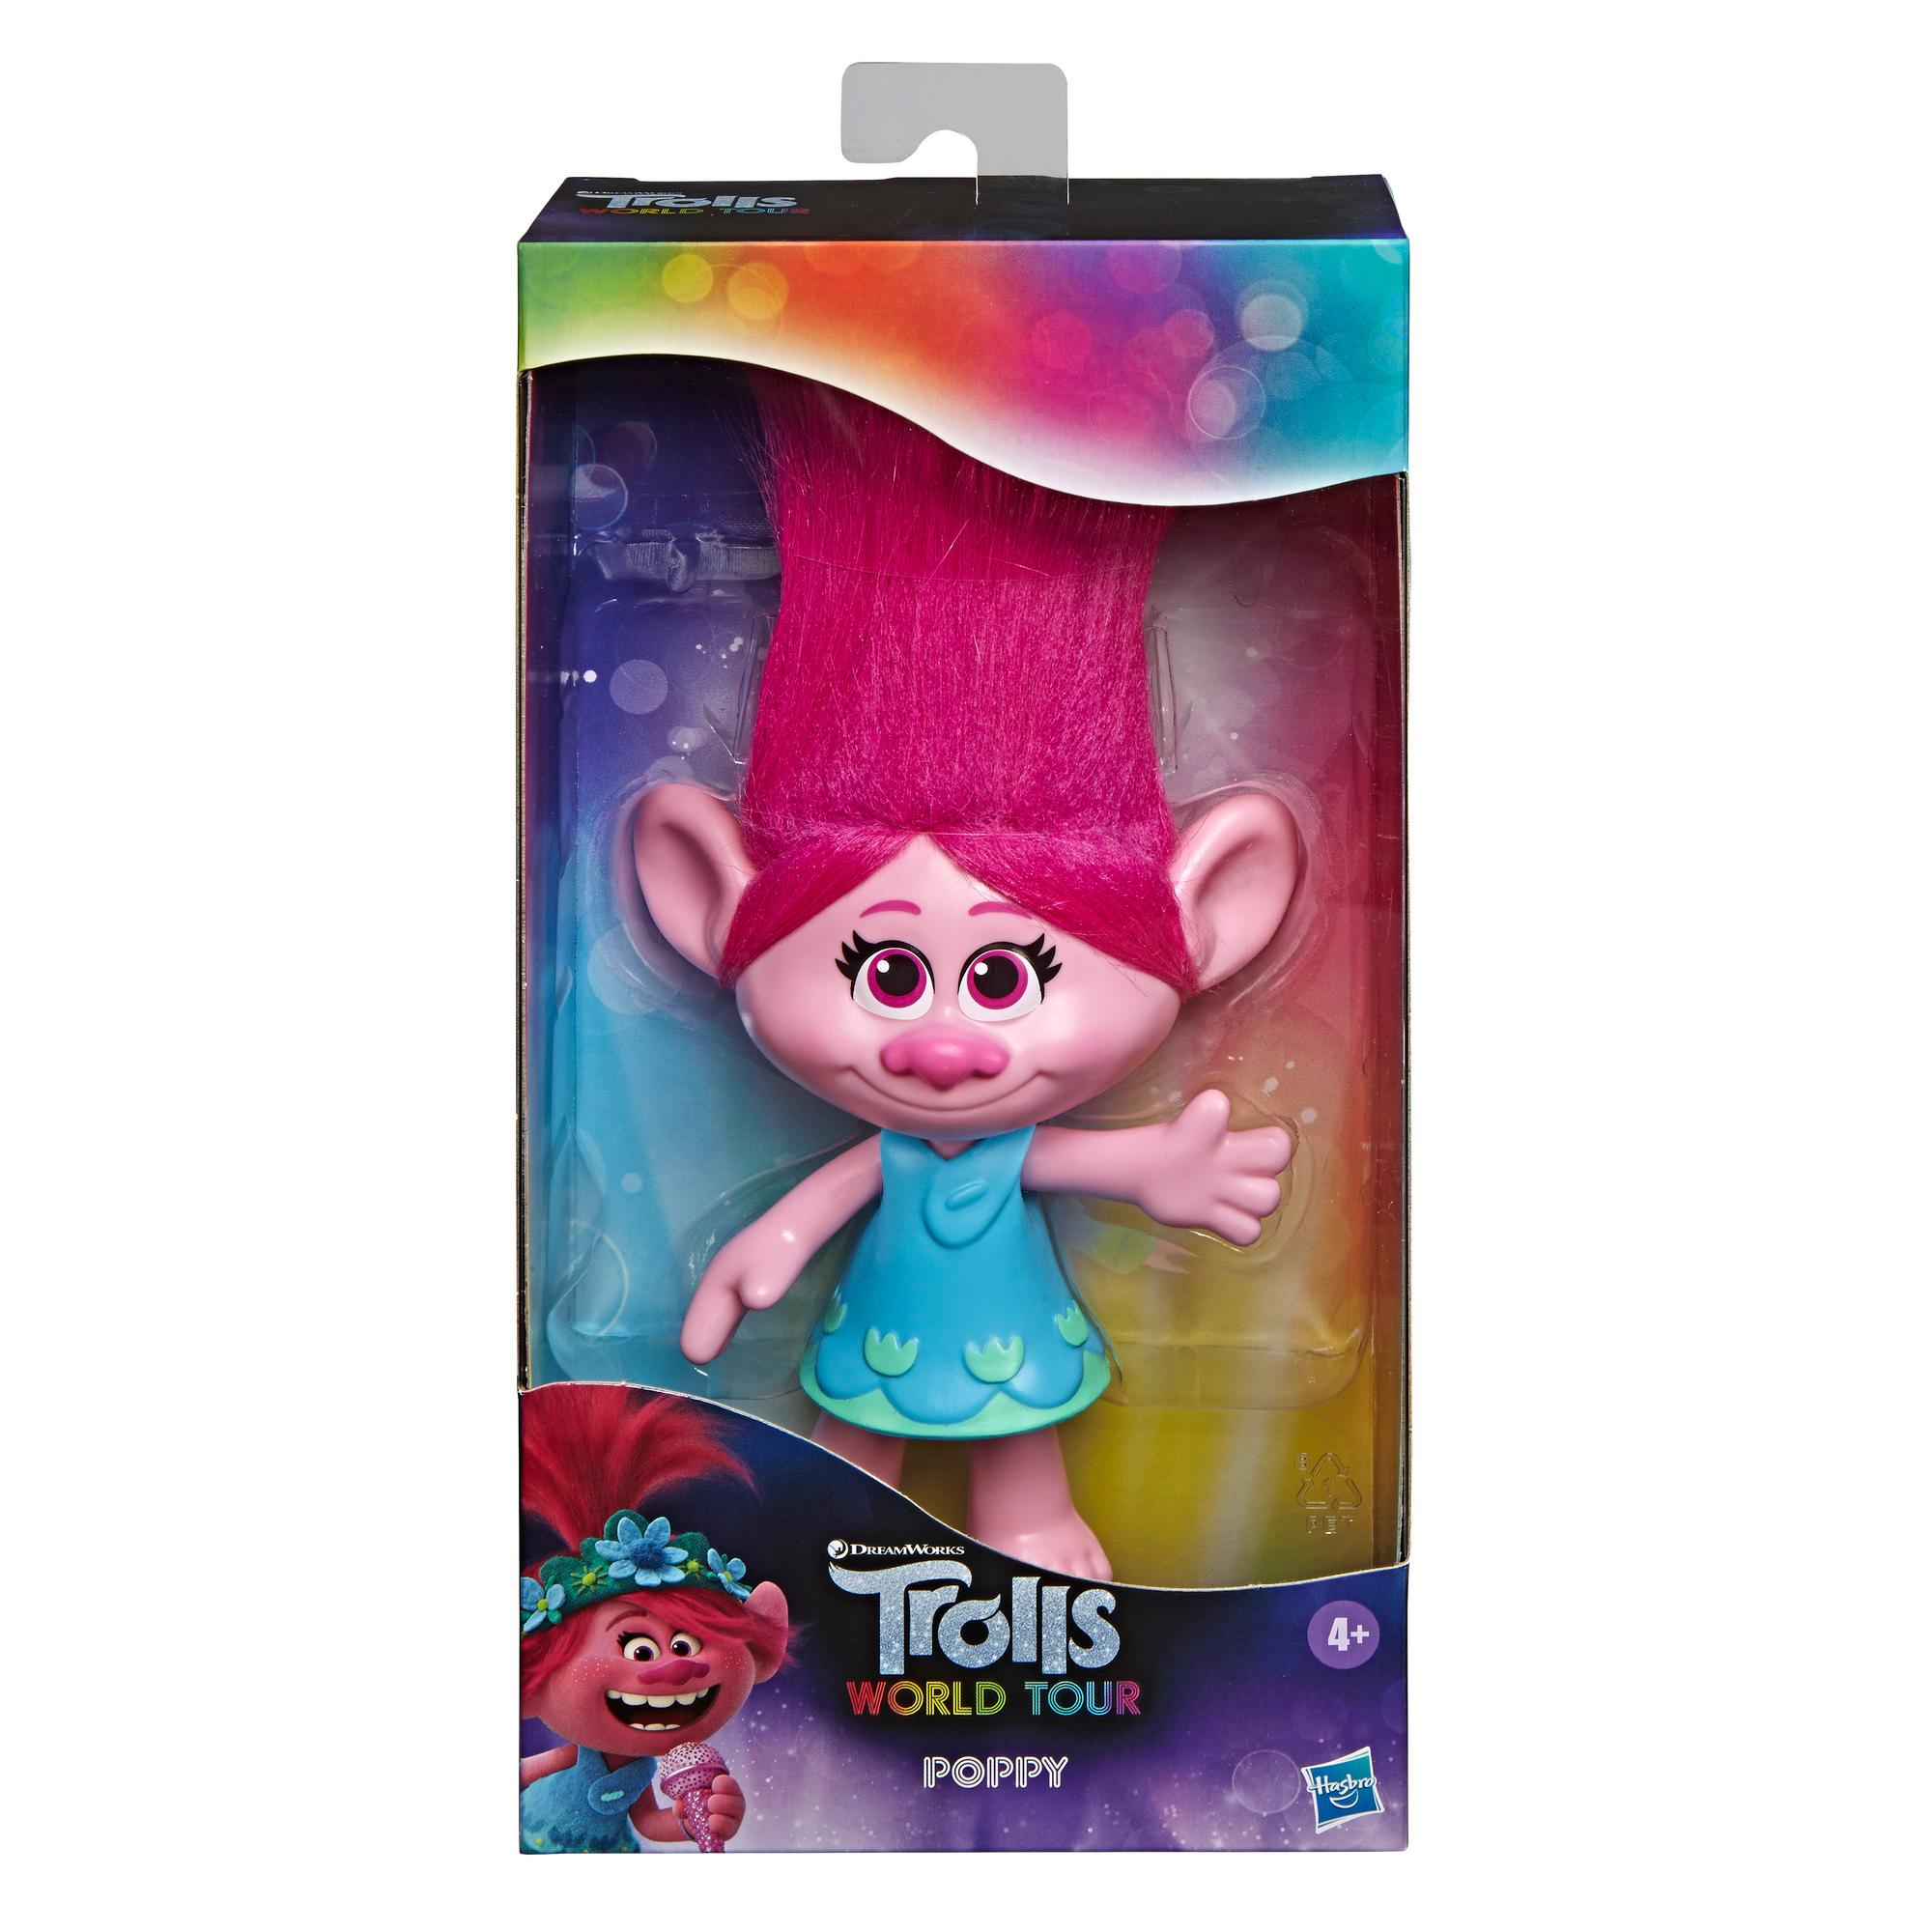 DreamWorks Trolls Poppy Doll with Removable Dress, Inspired by Trolls World Tour, Toy for Girls 4 Years and Up